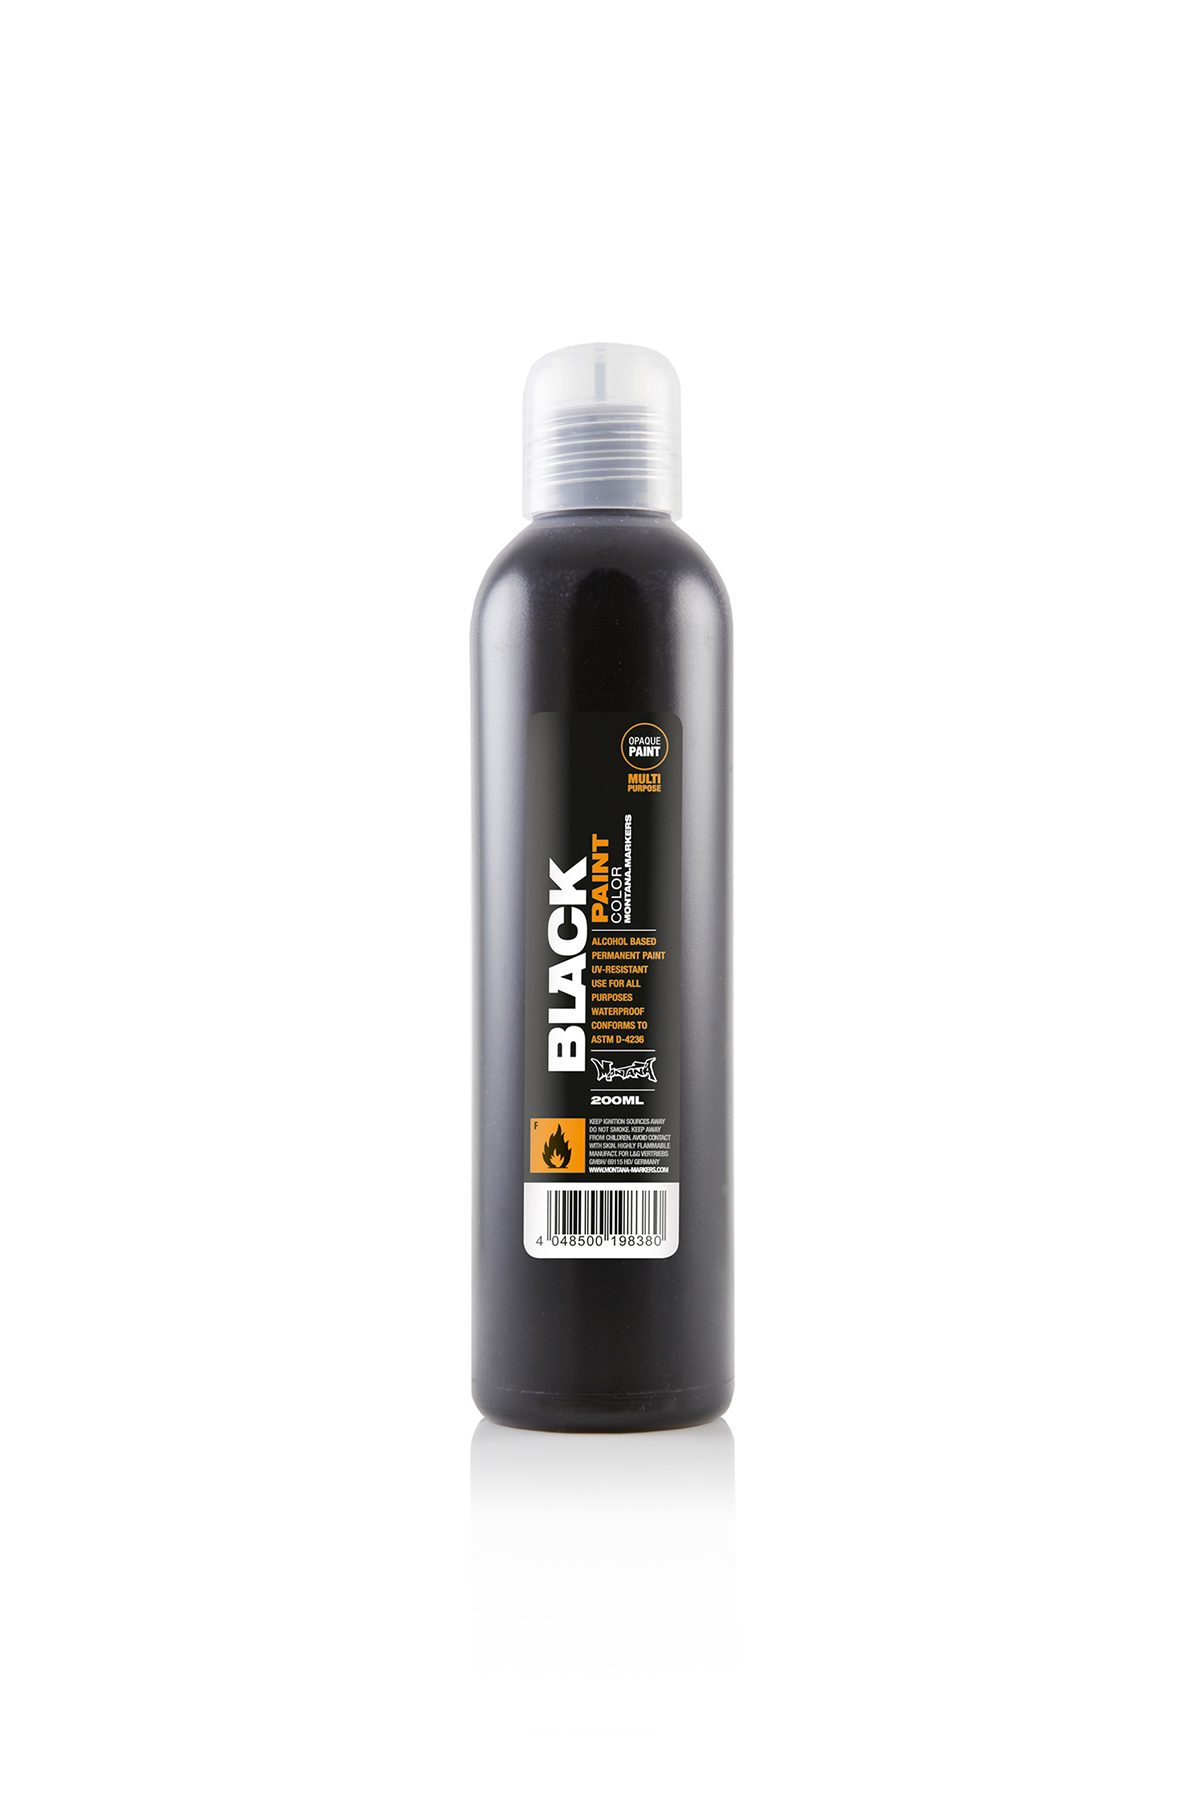 Montana BLACK PAINT REFILL 200ml